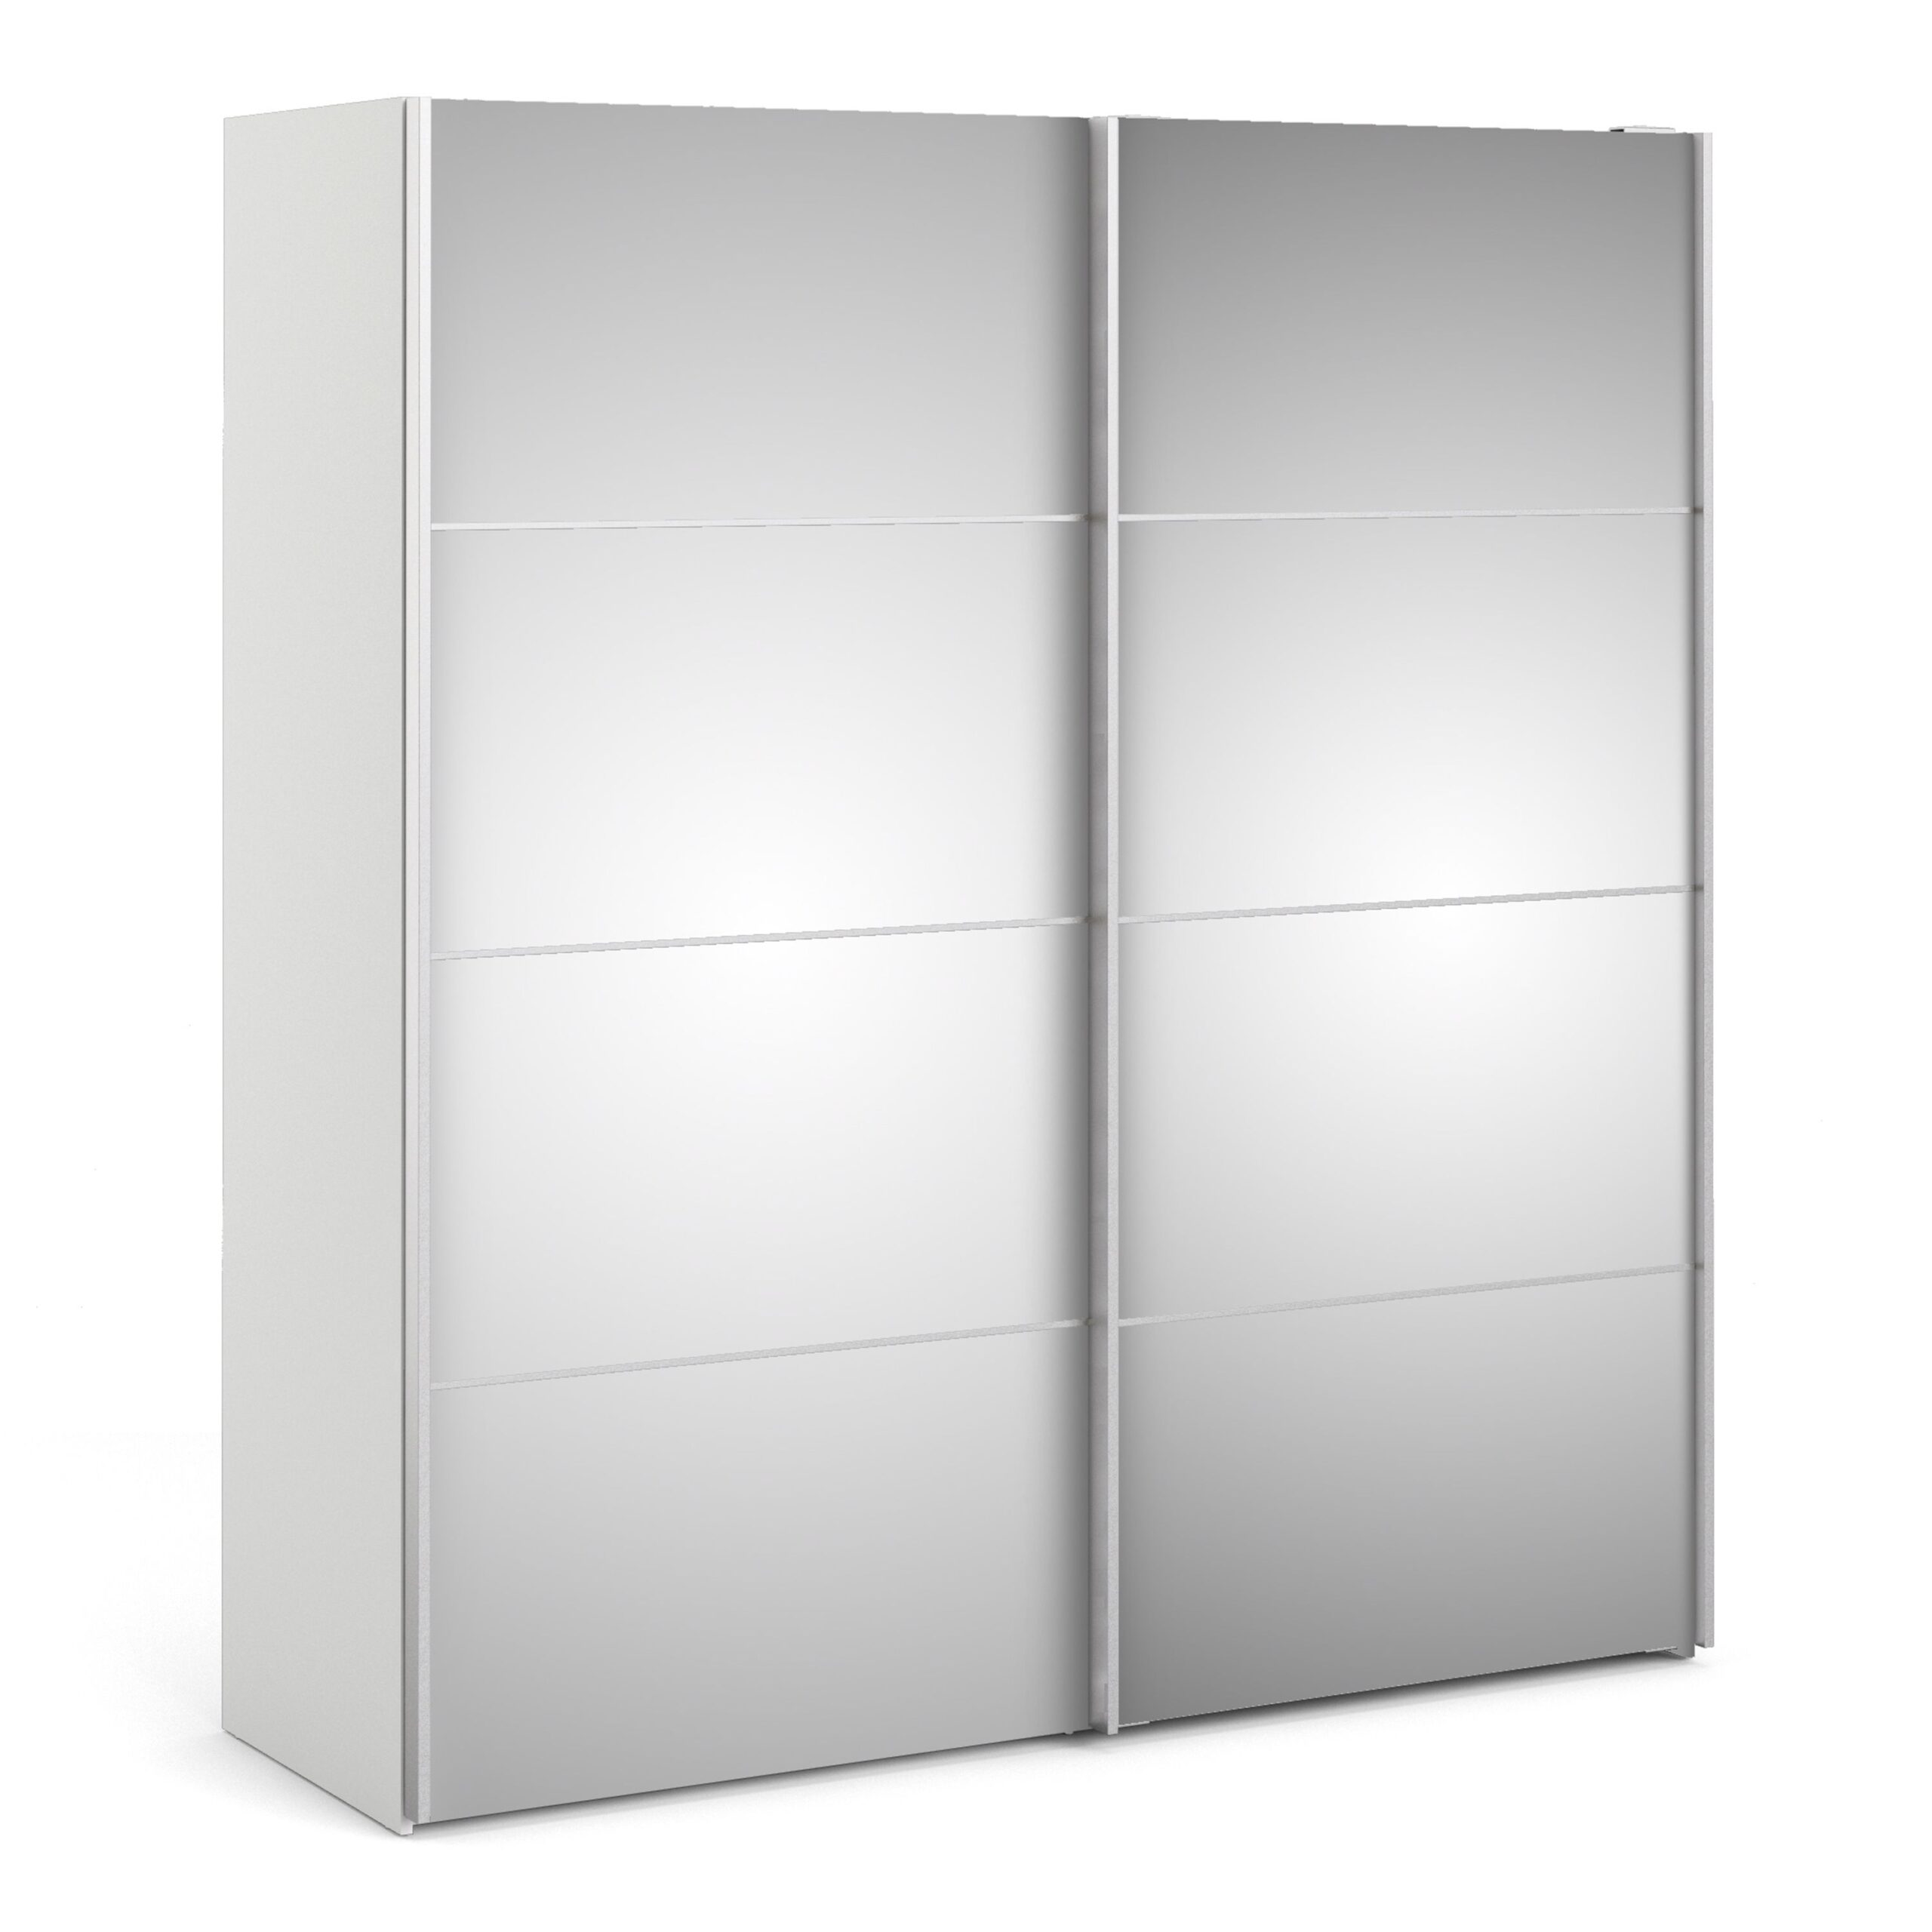 Phillipe Sliding Wardrobe 180cm in White with Mirror Doors with 2 Shelves